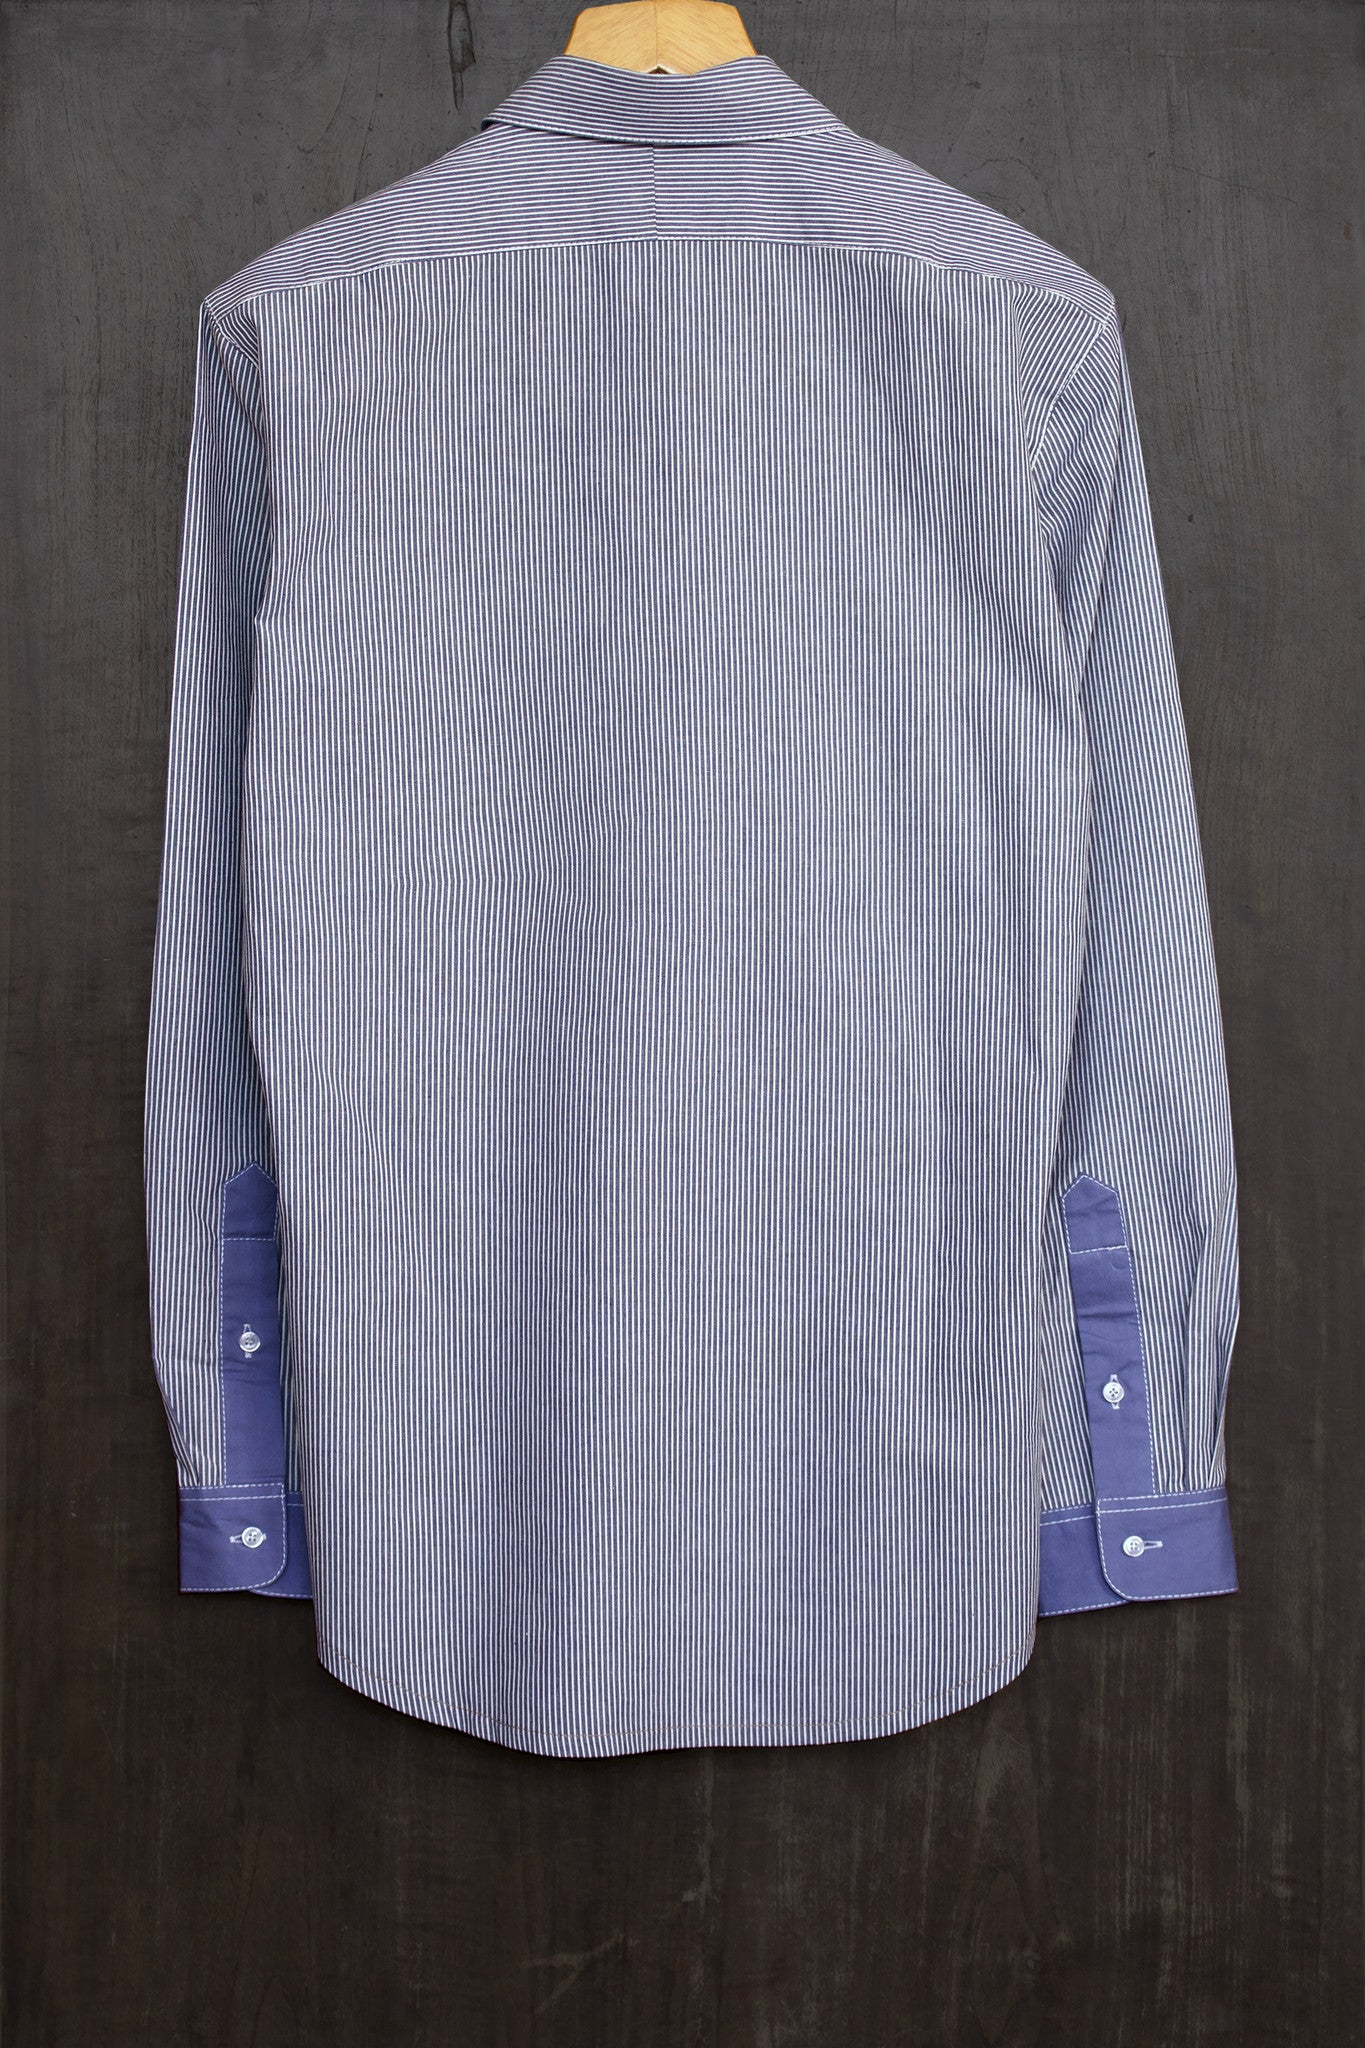 The Lakehead Oxford Shirt - Long Sleeve (blue/white)